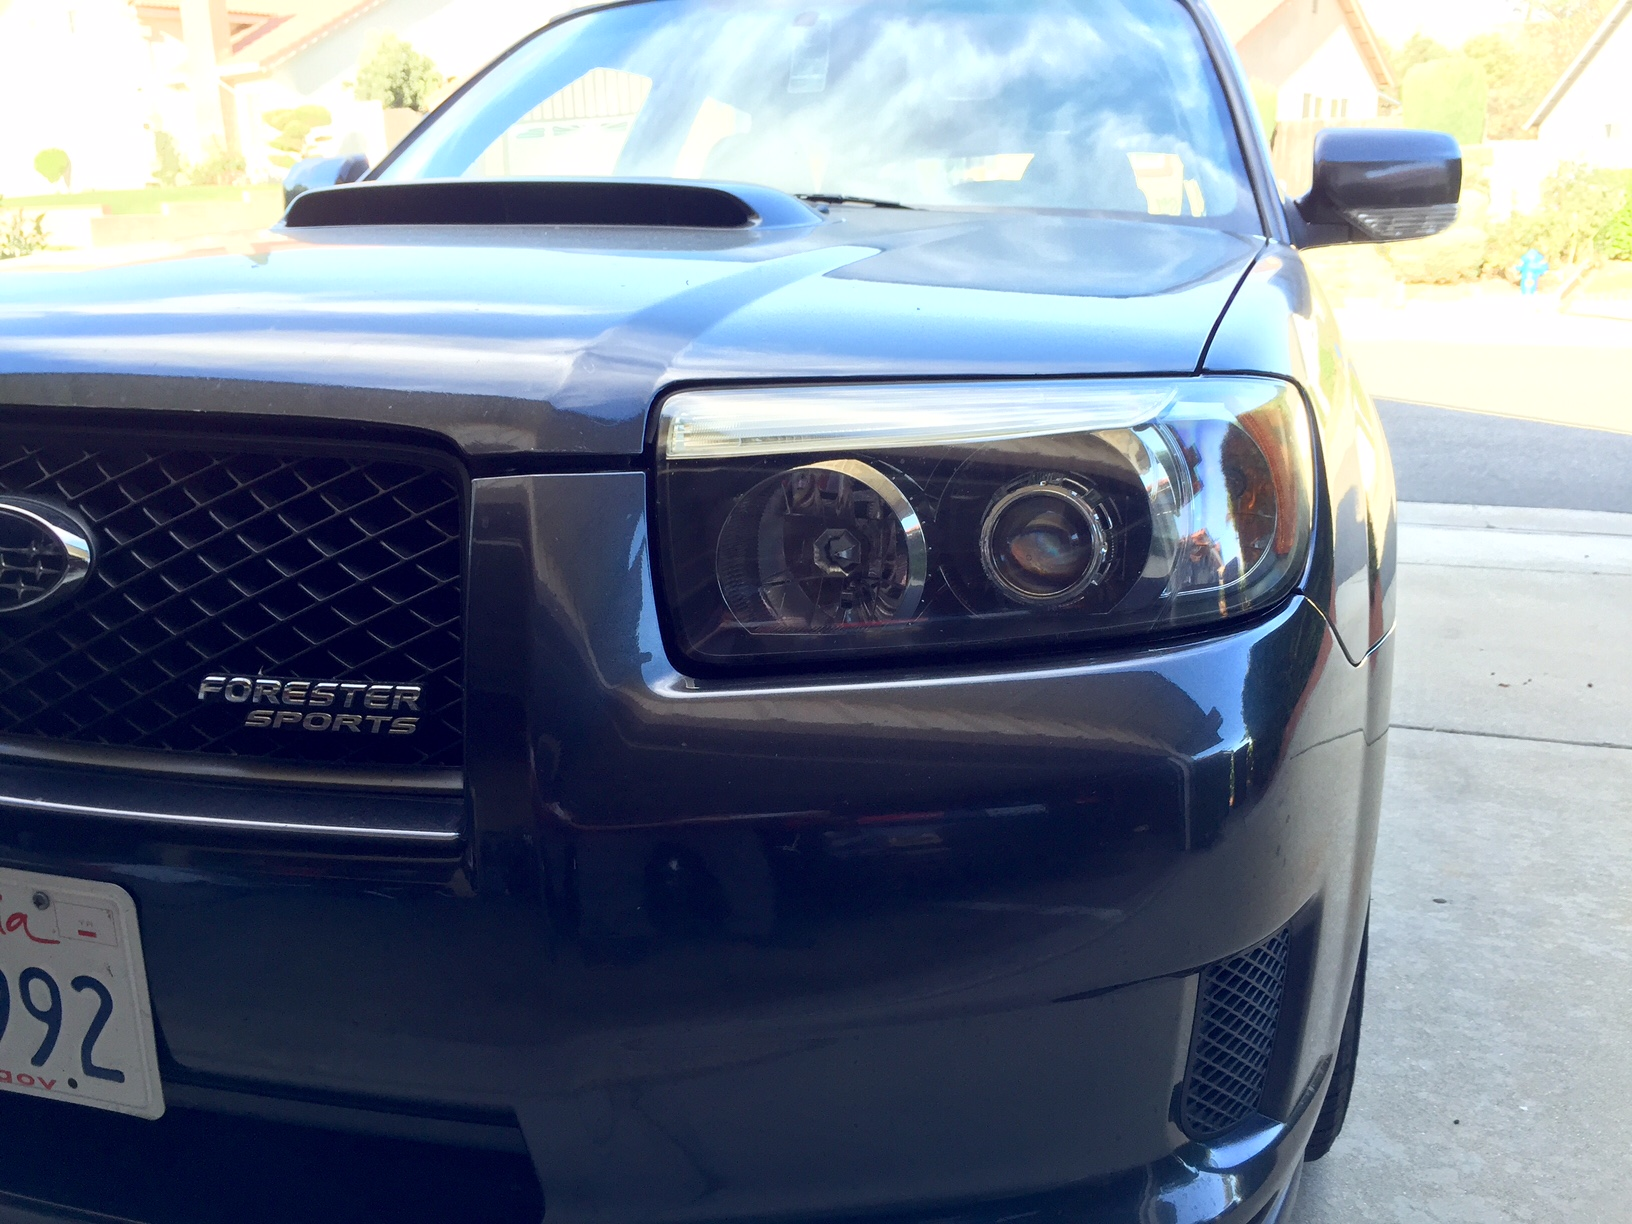 Nolan tsuchiya blog how to morimoto mini h1 70 hid projector headlight retrofit on 2008 subaru forester sports xt vanachro Images